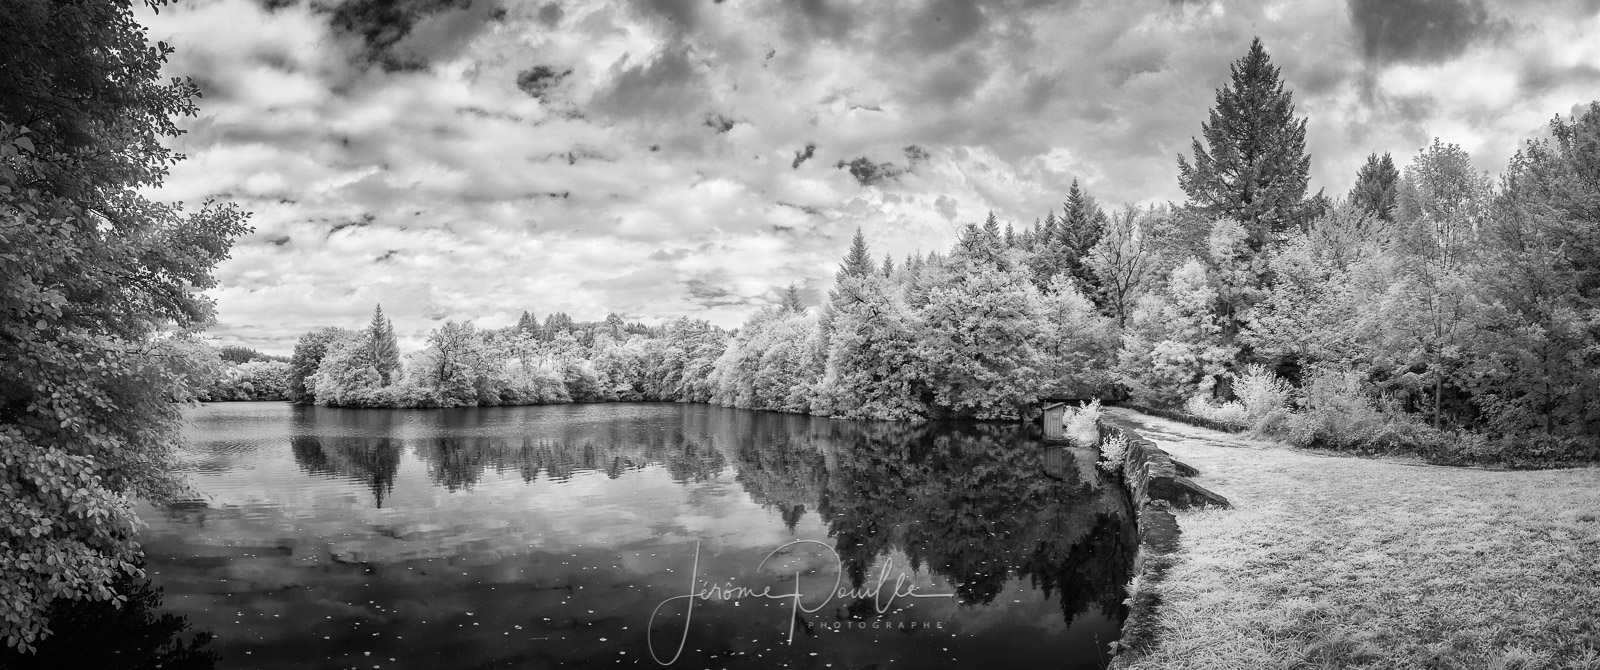 panoramique INFRARED de 5 photos, Canon 20D, Irix 15mm f/2.4 @ f/8